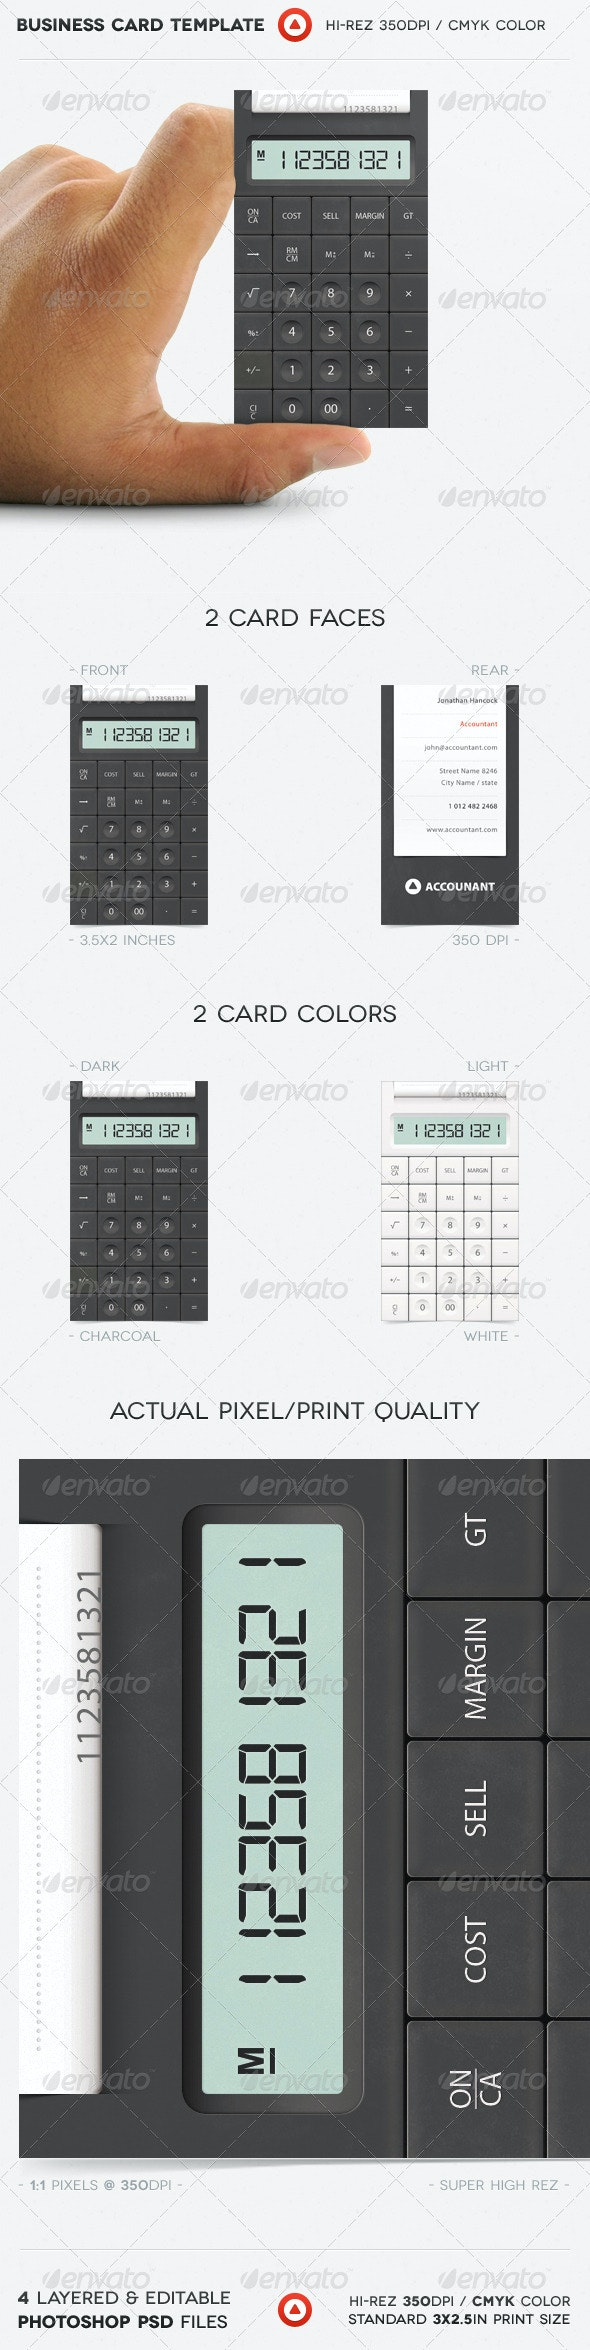 Accountant Business Card - Real Objects Business Cards